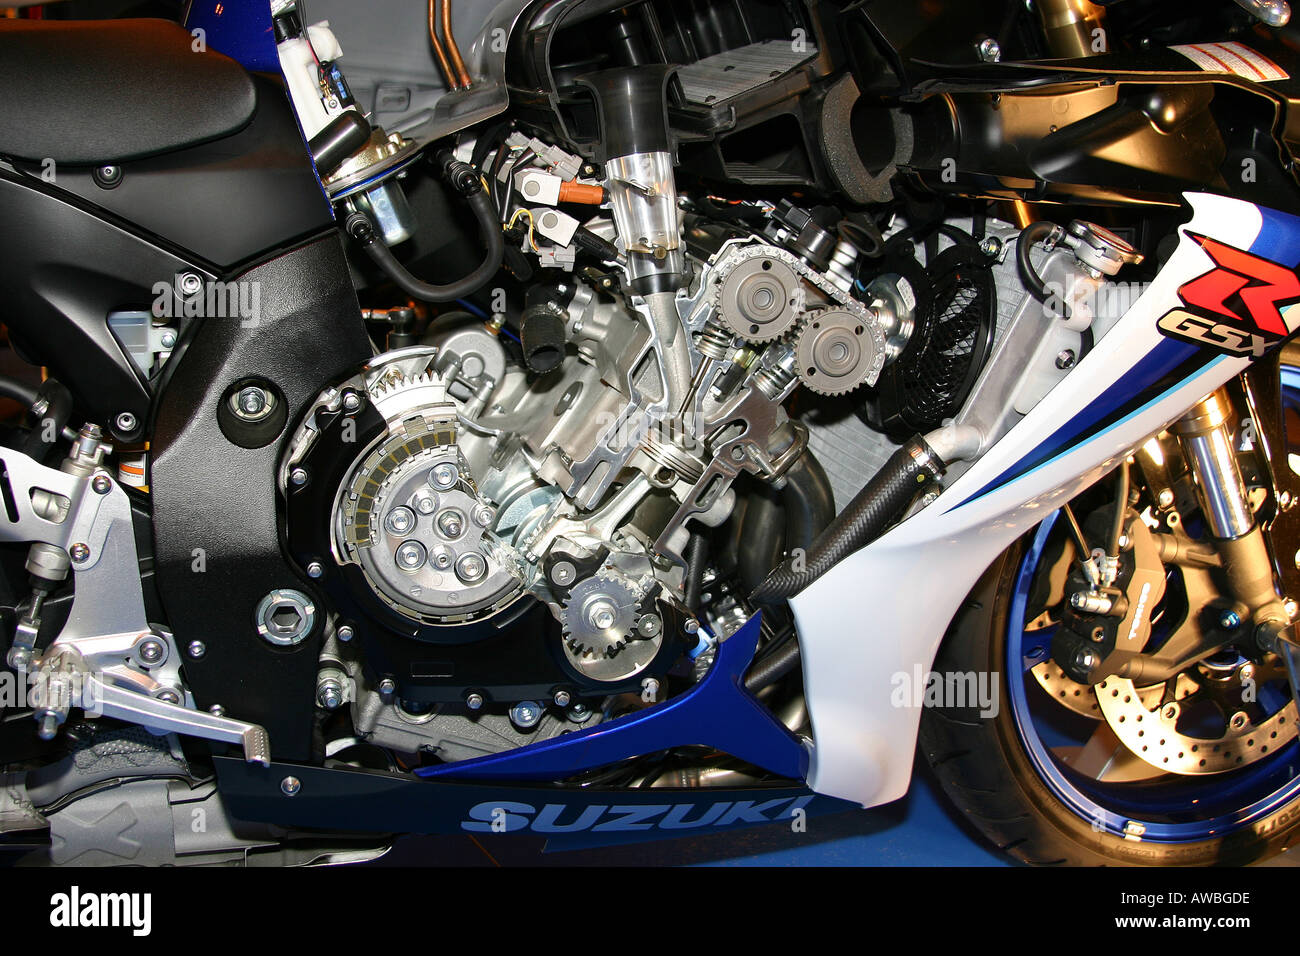 hight resolution of cut away view of inside of modern four stroke motorcycle engine stock image